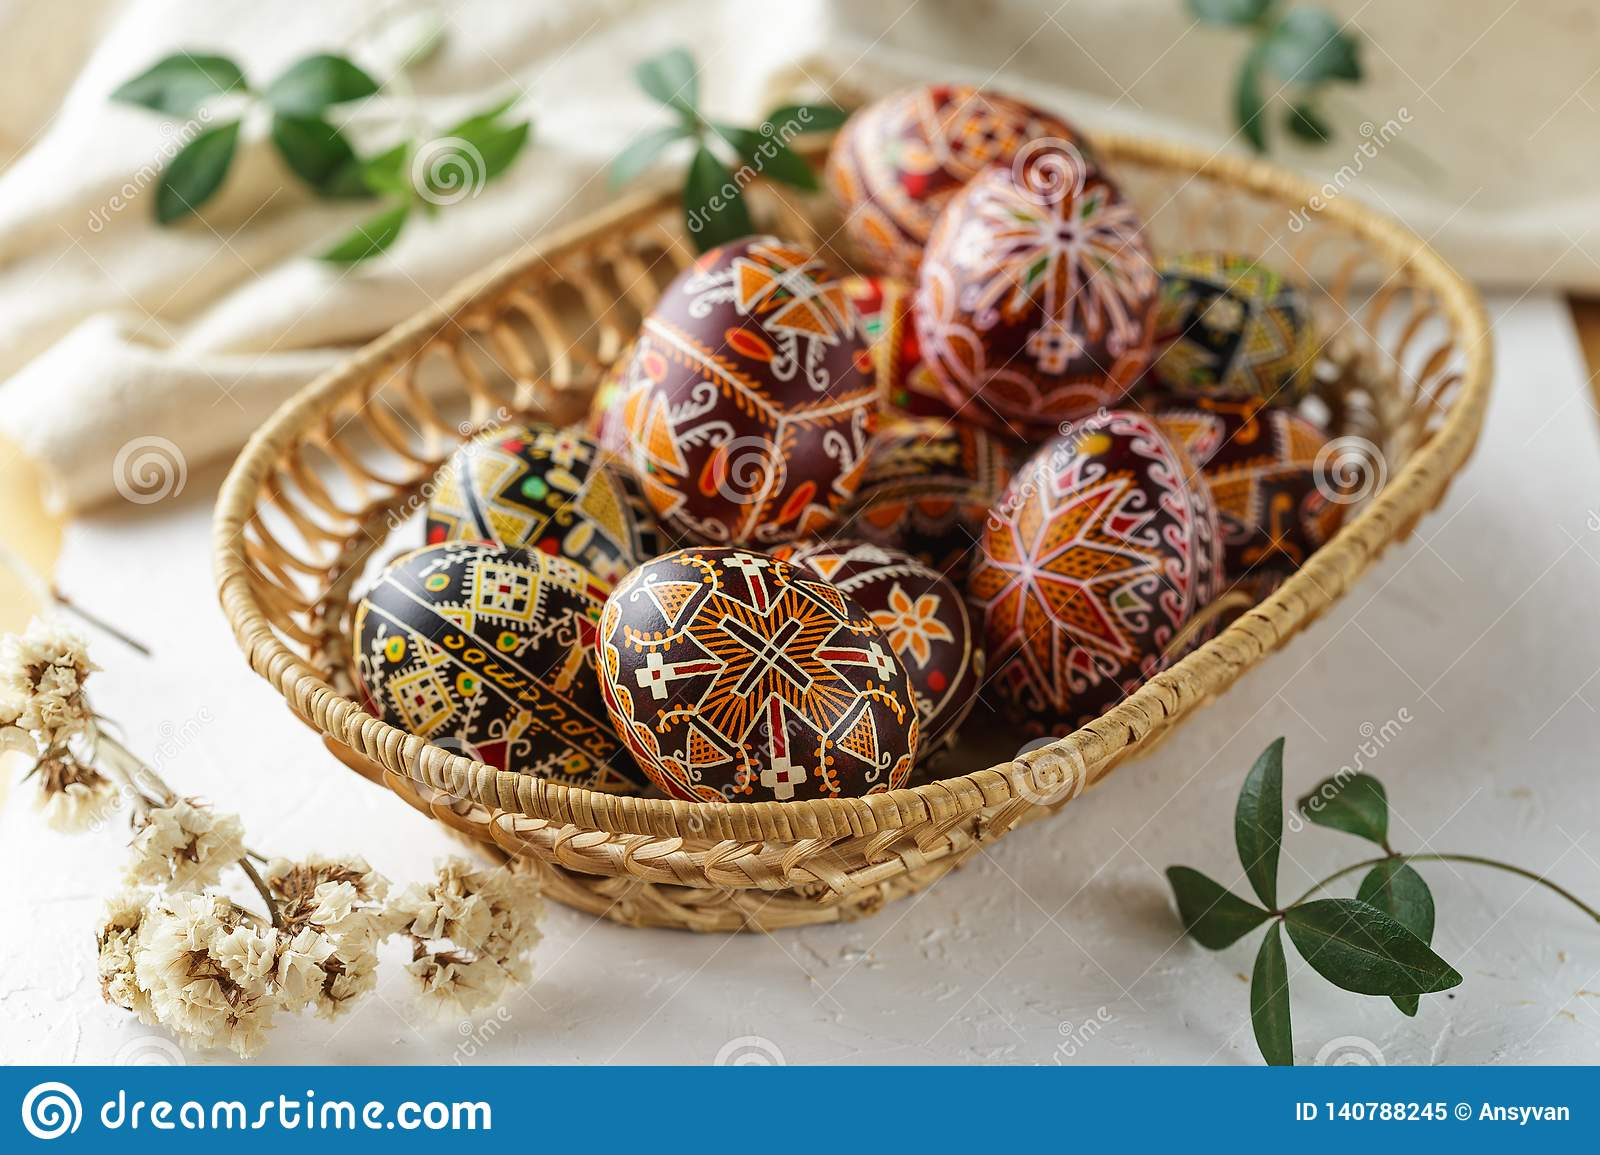 Easter Eggs Decorated With Wax Resist Technique Stock Image Image